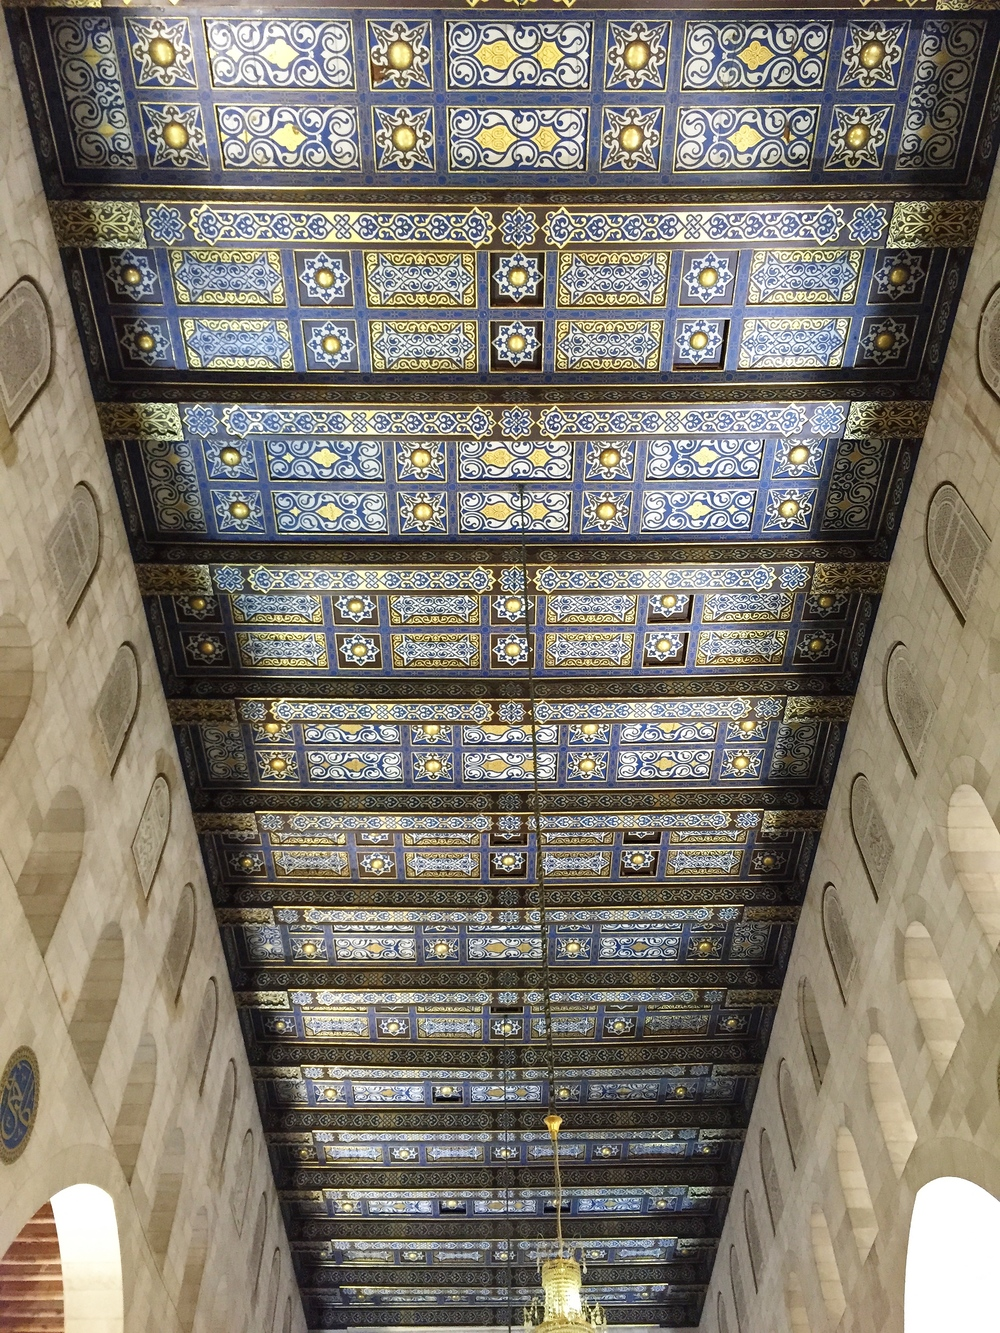 Beautiful ceiling in Masjid Al-Aqsa (this photo isn't even close to doing it justice)